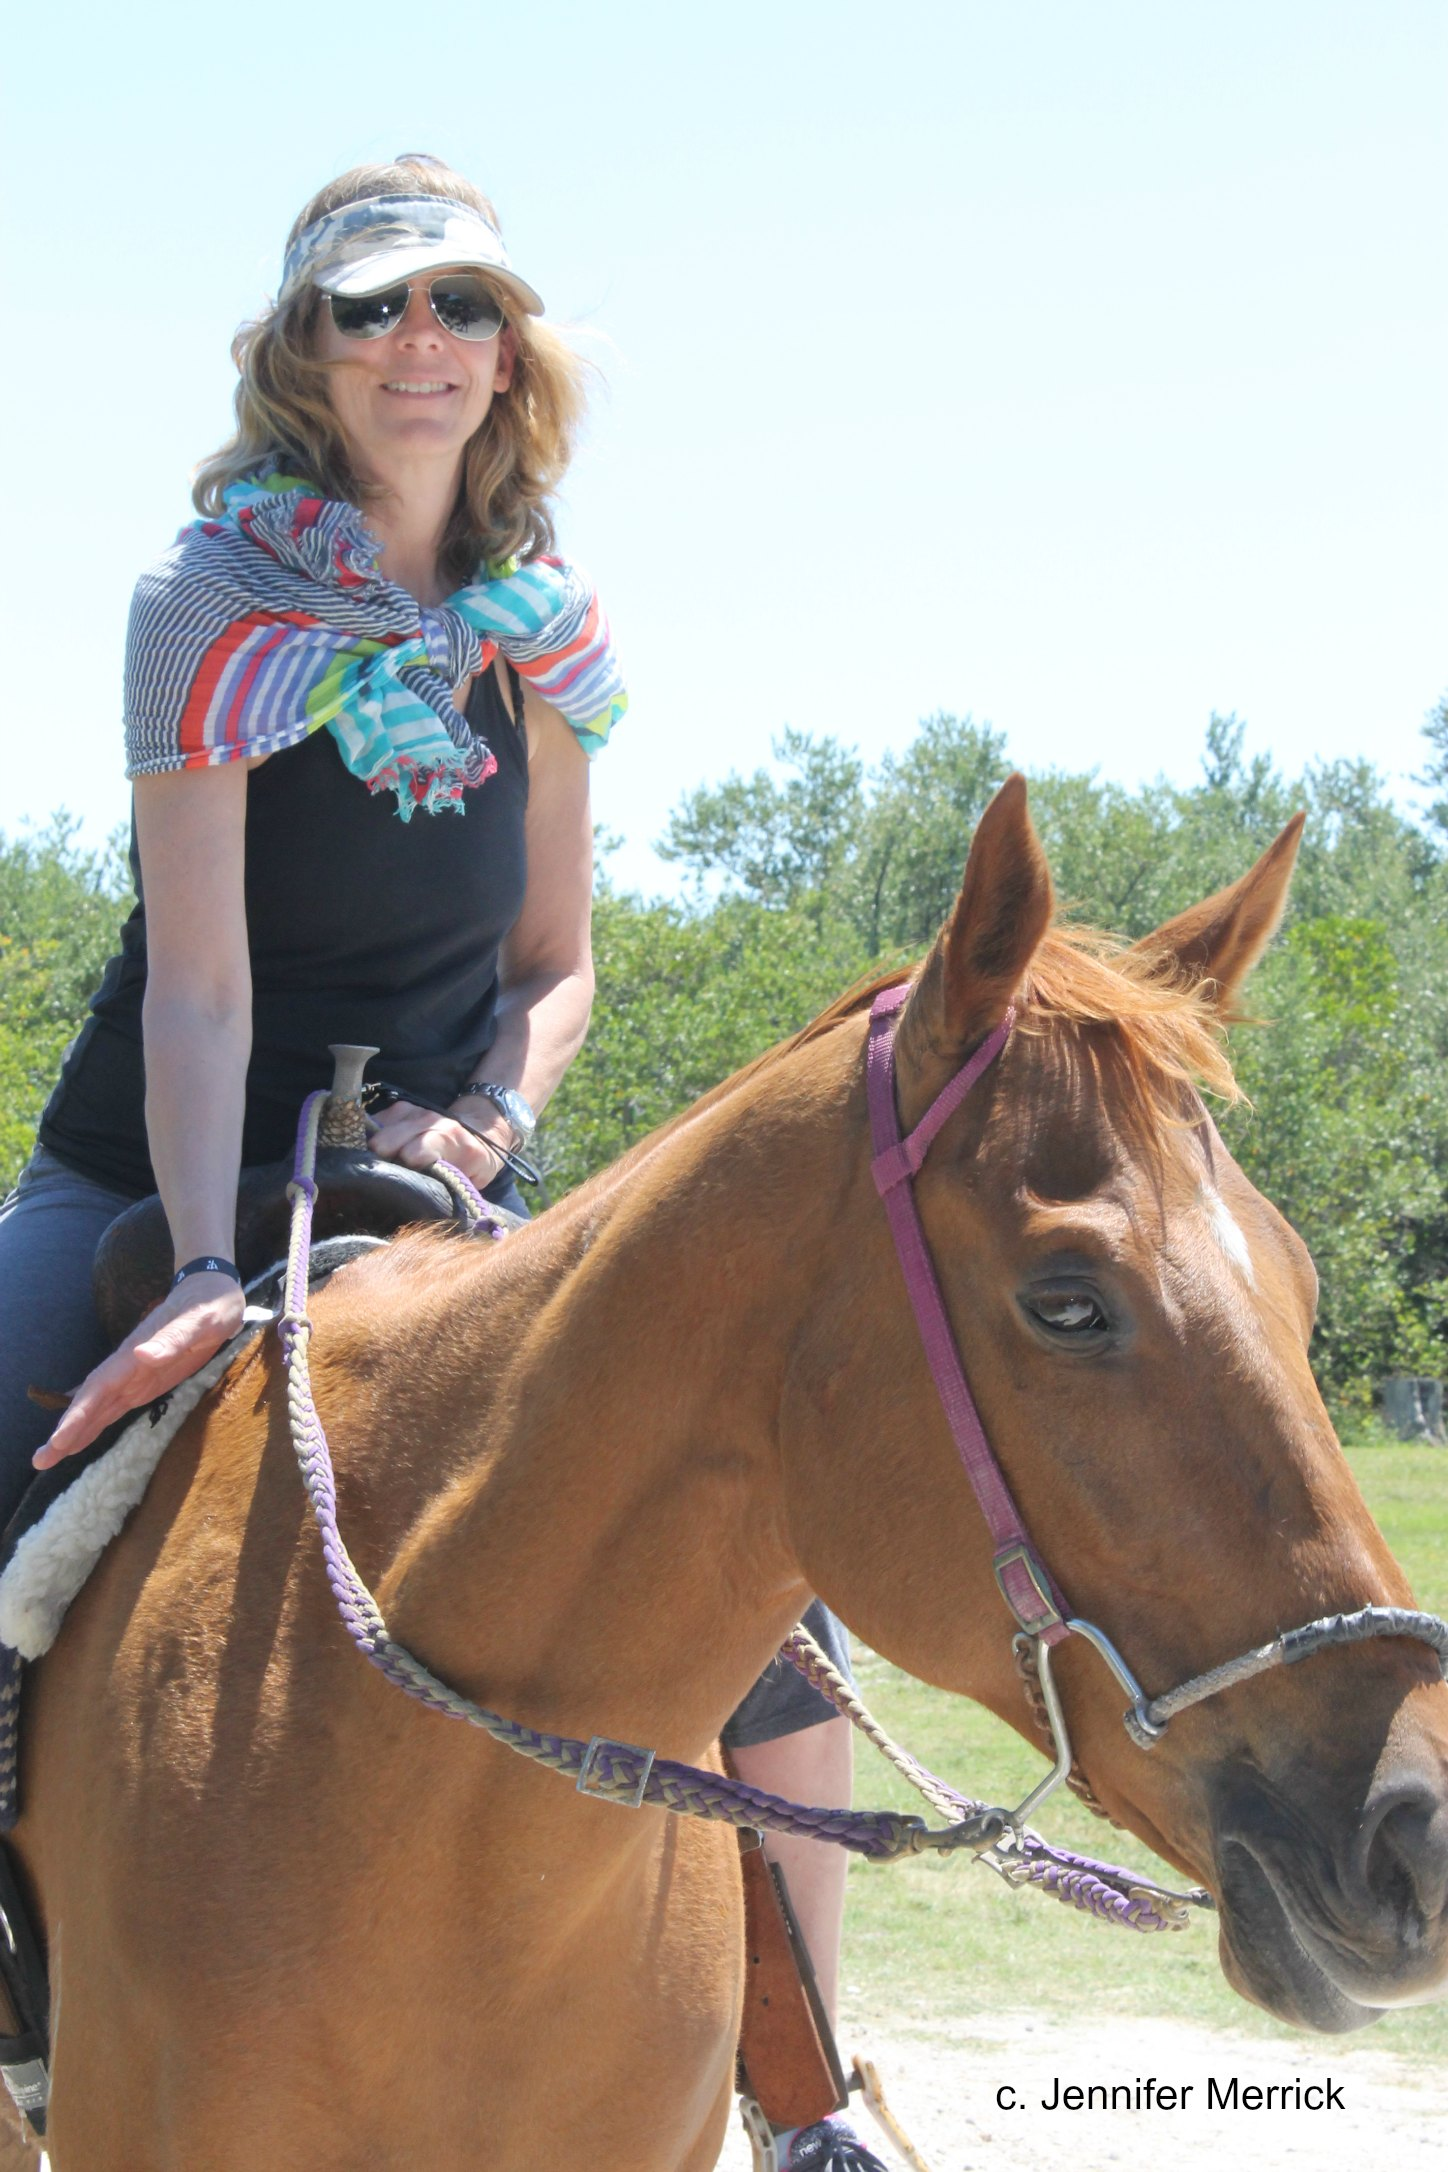 Travel Florida: Beach Riding in St. Lucie County by Jennifer Merrick